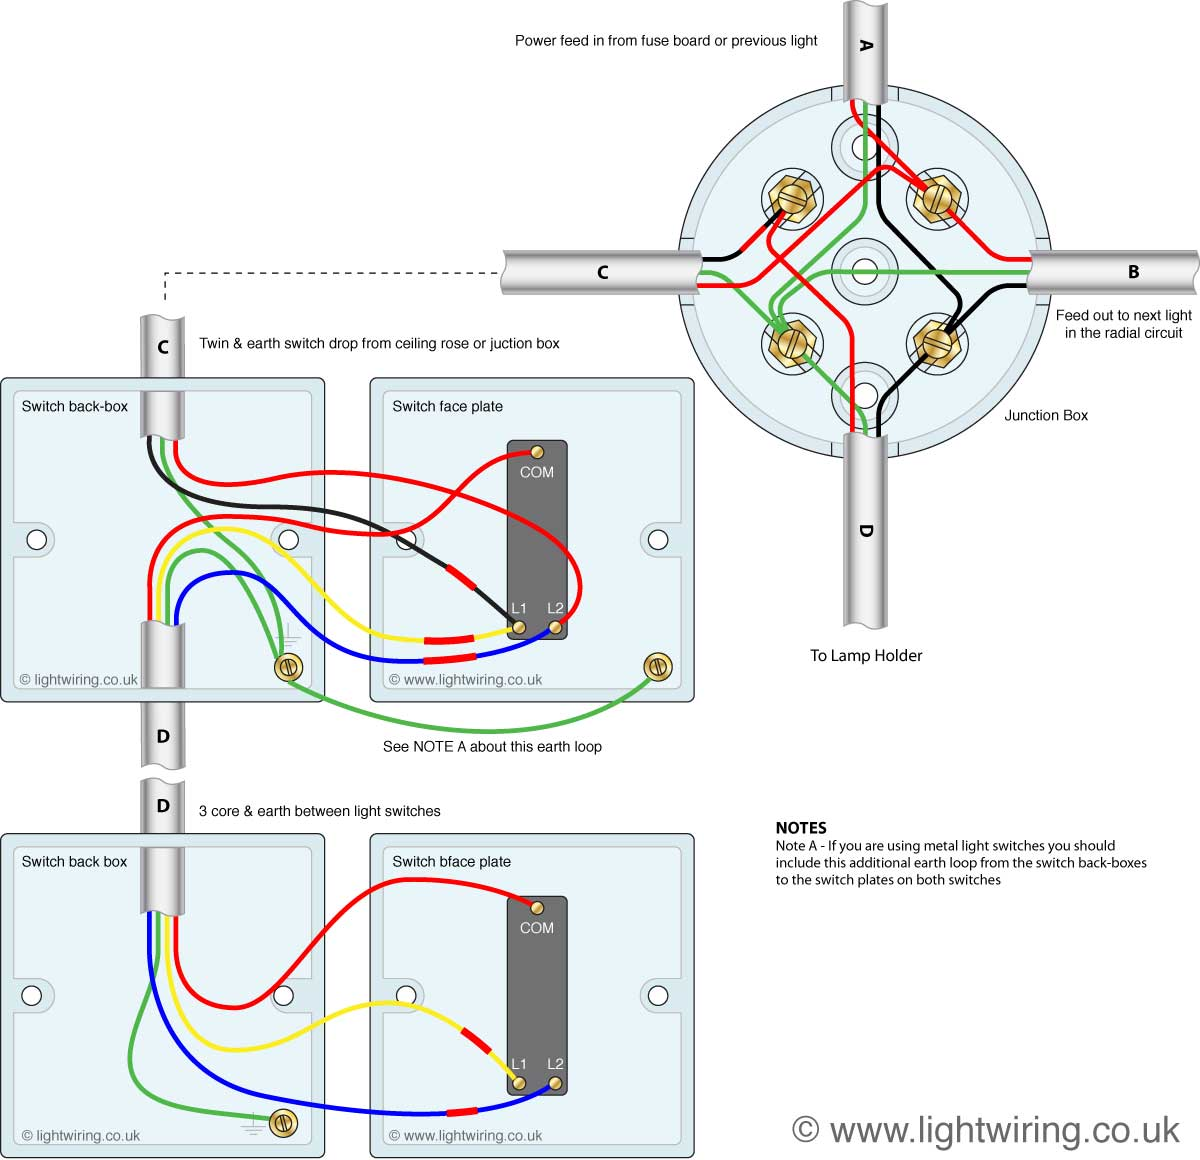 Wiring Diagram For Light Box : Light wiring diagram